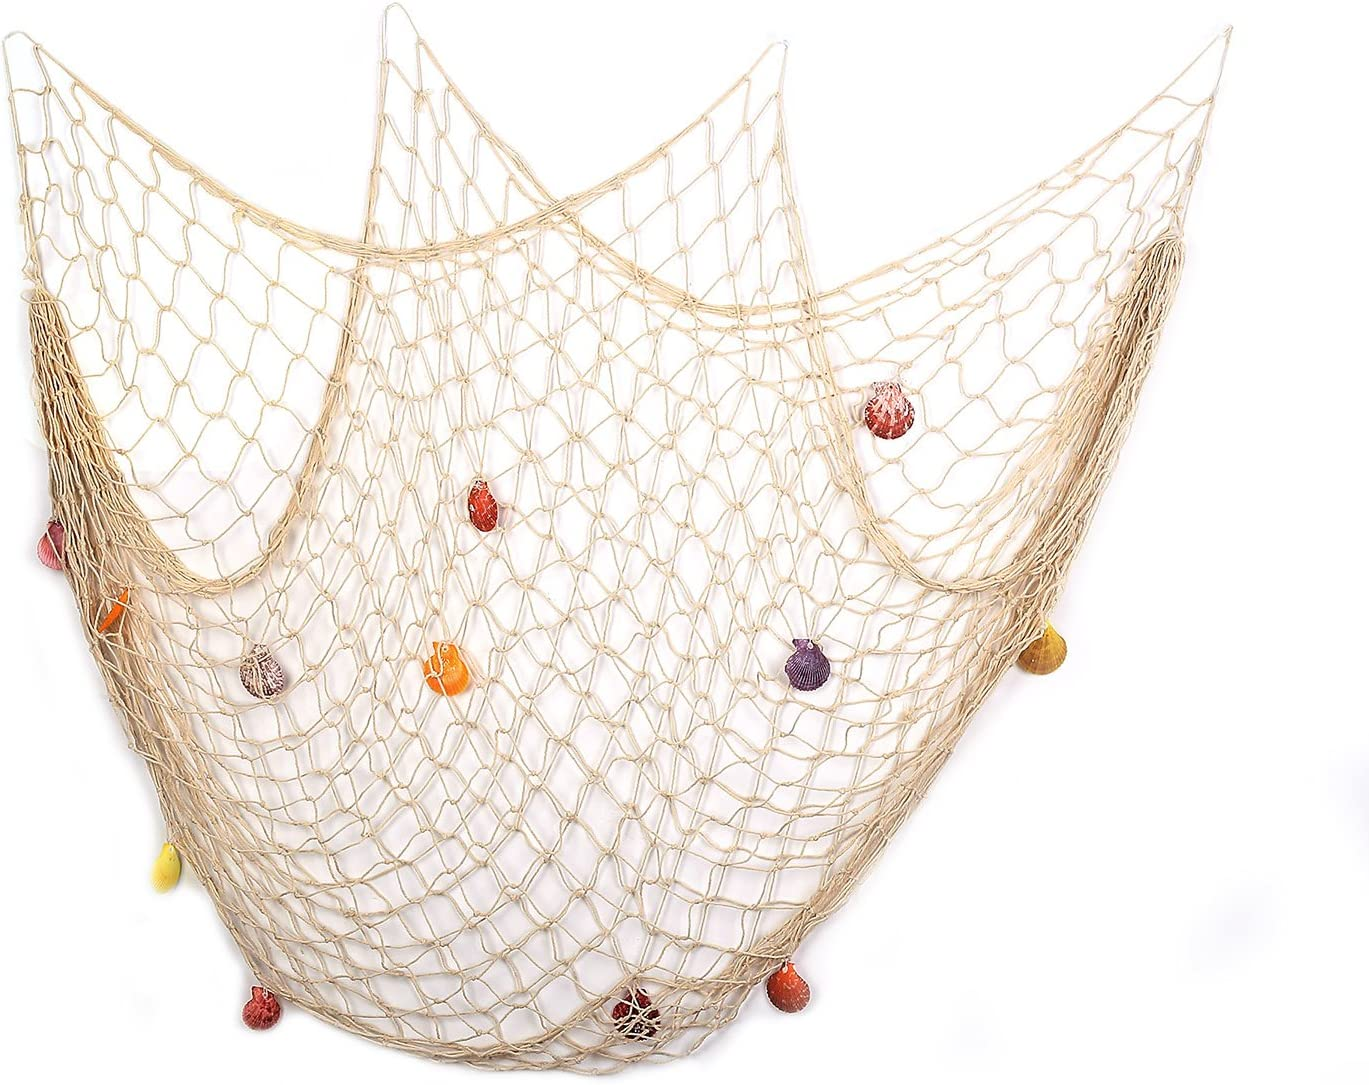 Yagote 79inch x 59inch Decorative Fish Net with Shells White Mediterranean Style Nautical Decorative Fishing Net Hanging Home Decor Room Decoration(79x59inch White)